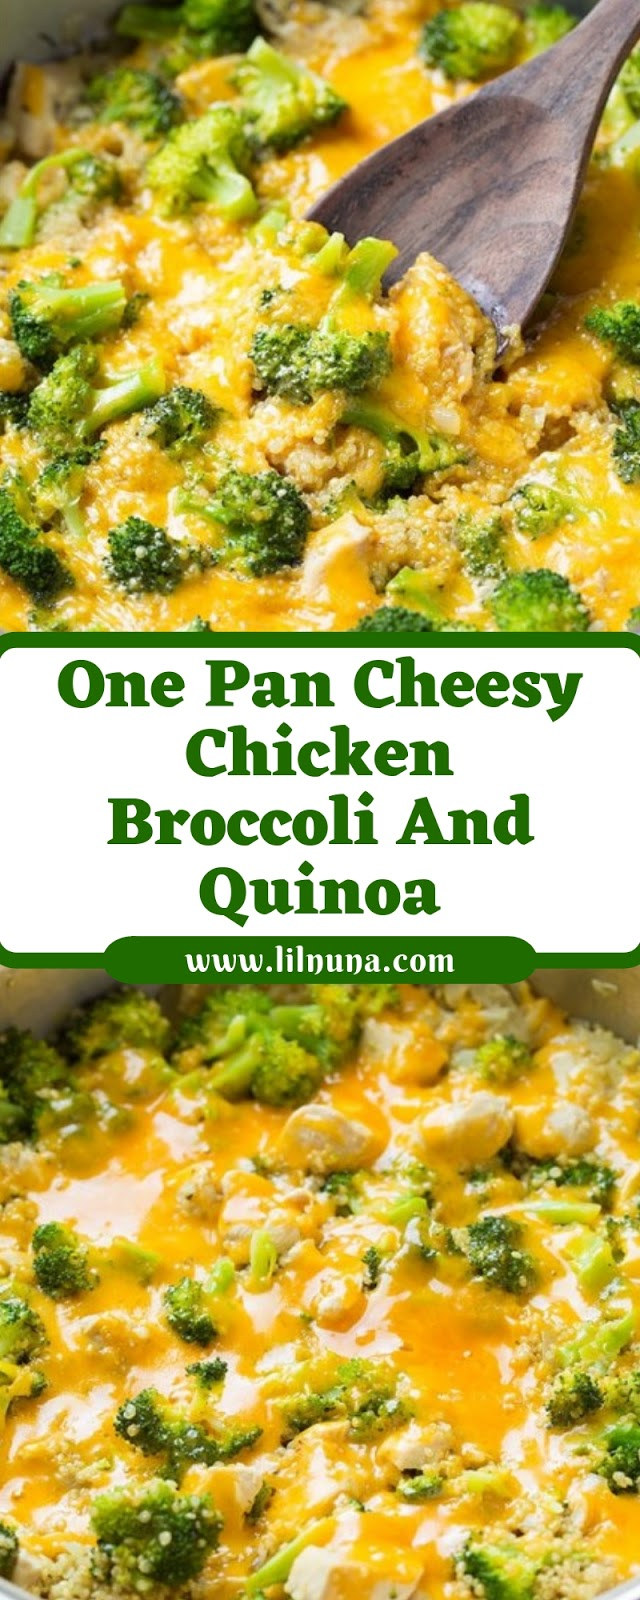 One Pan Cheesy Chicken Broccoli And Quinoa